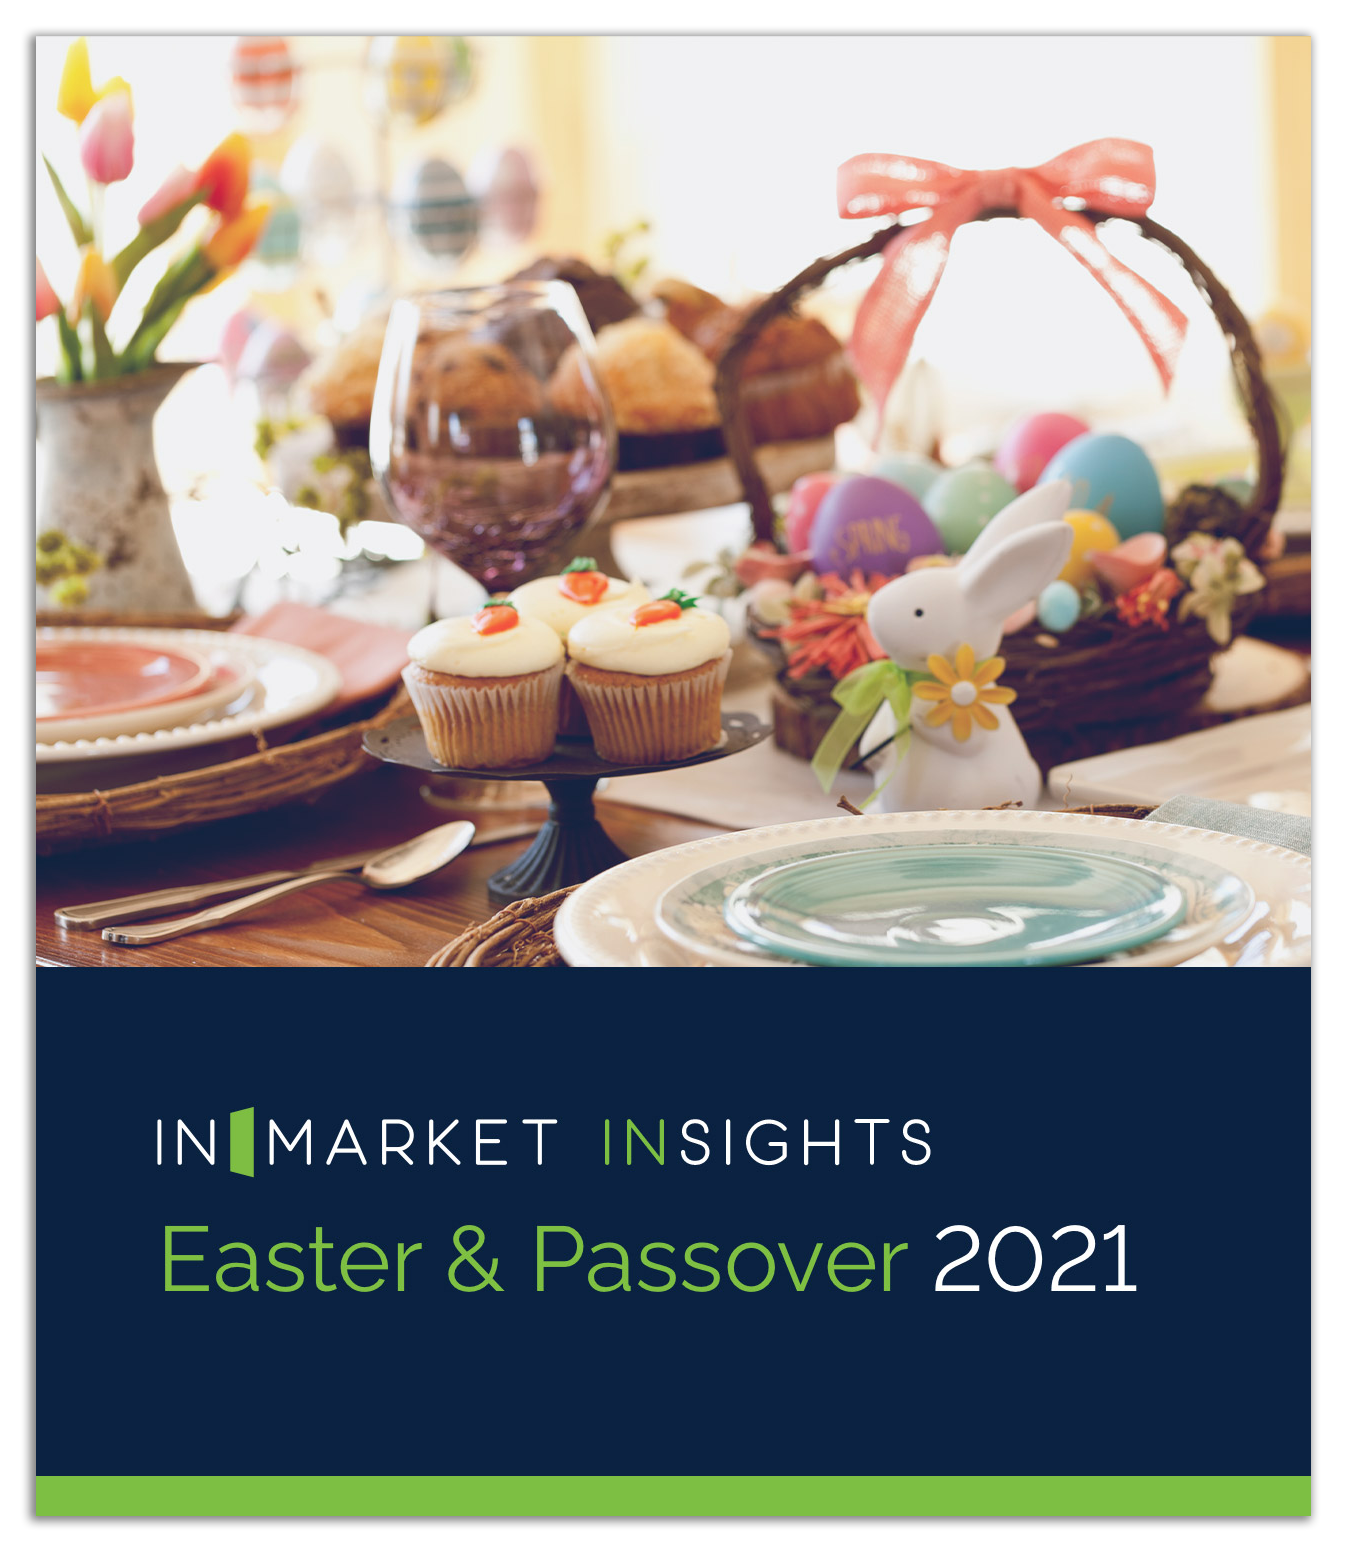 Easter & Passover 2021 Cover Photo-shadowed